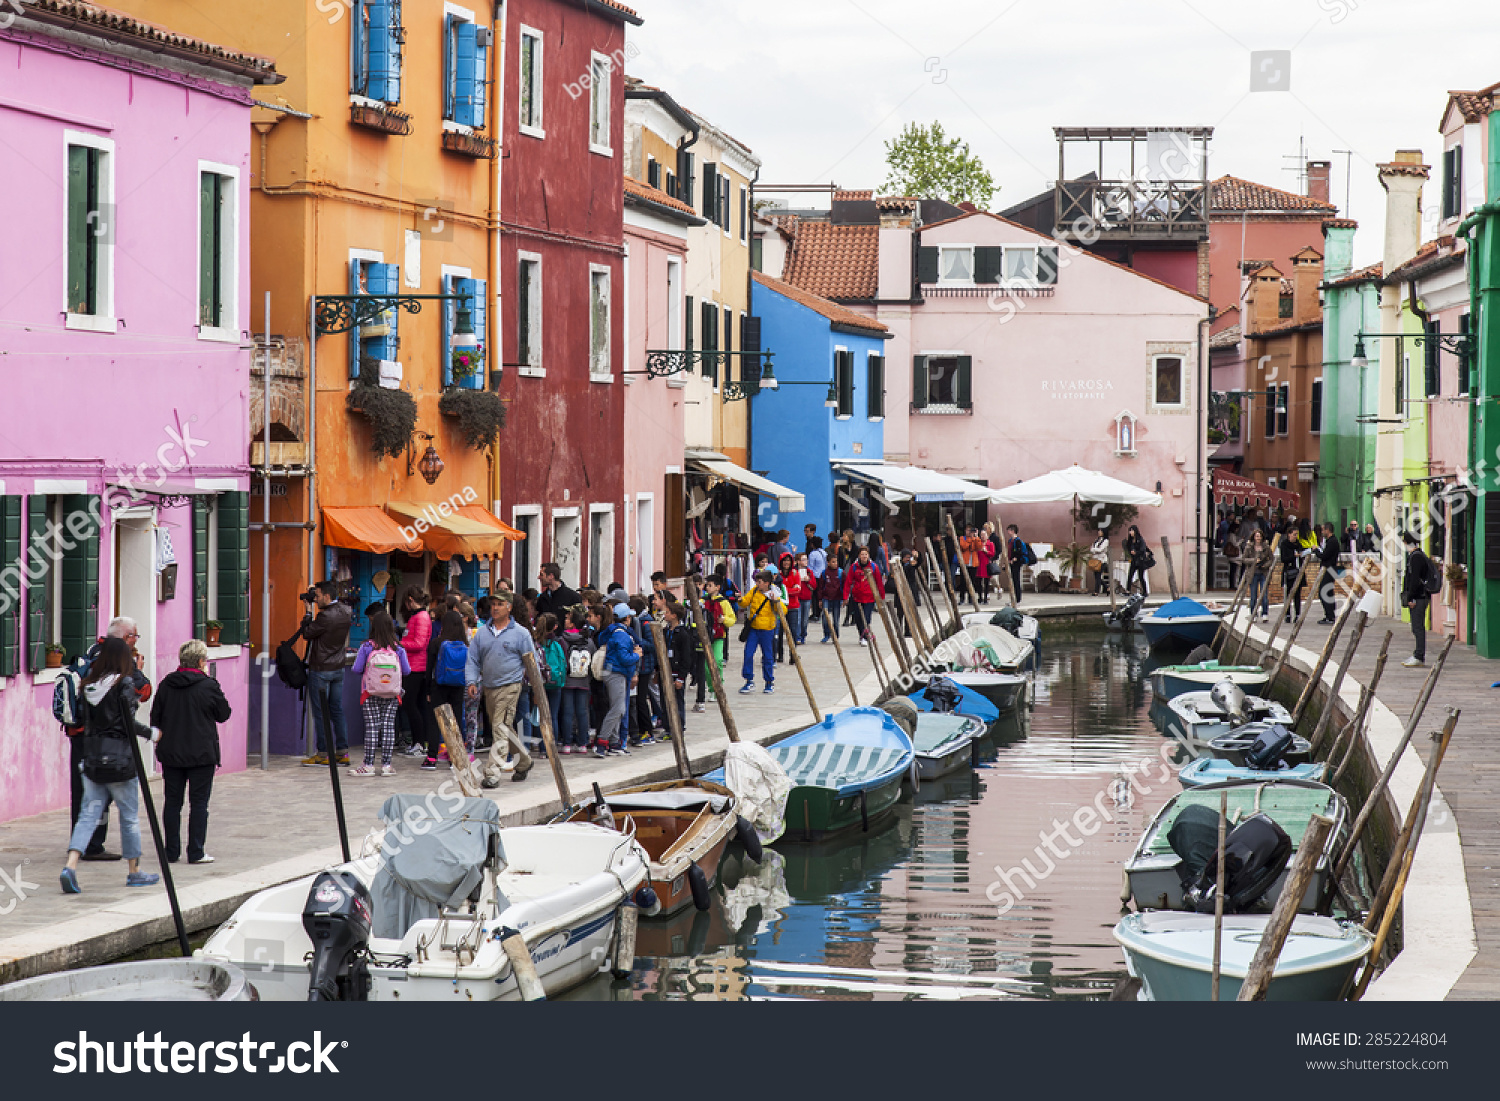 Colorful burano italy burano tourism - Venice Italy On April 30 2015 Burano Island Typical Street Canal